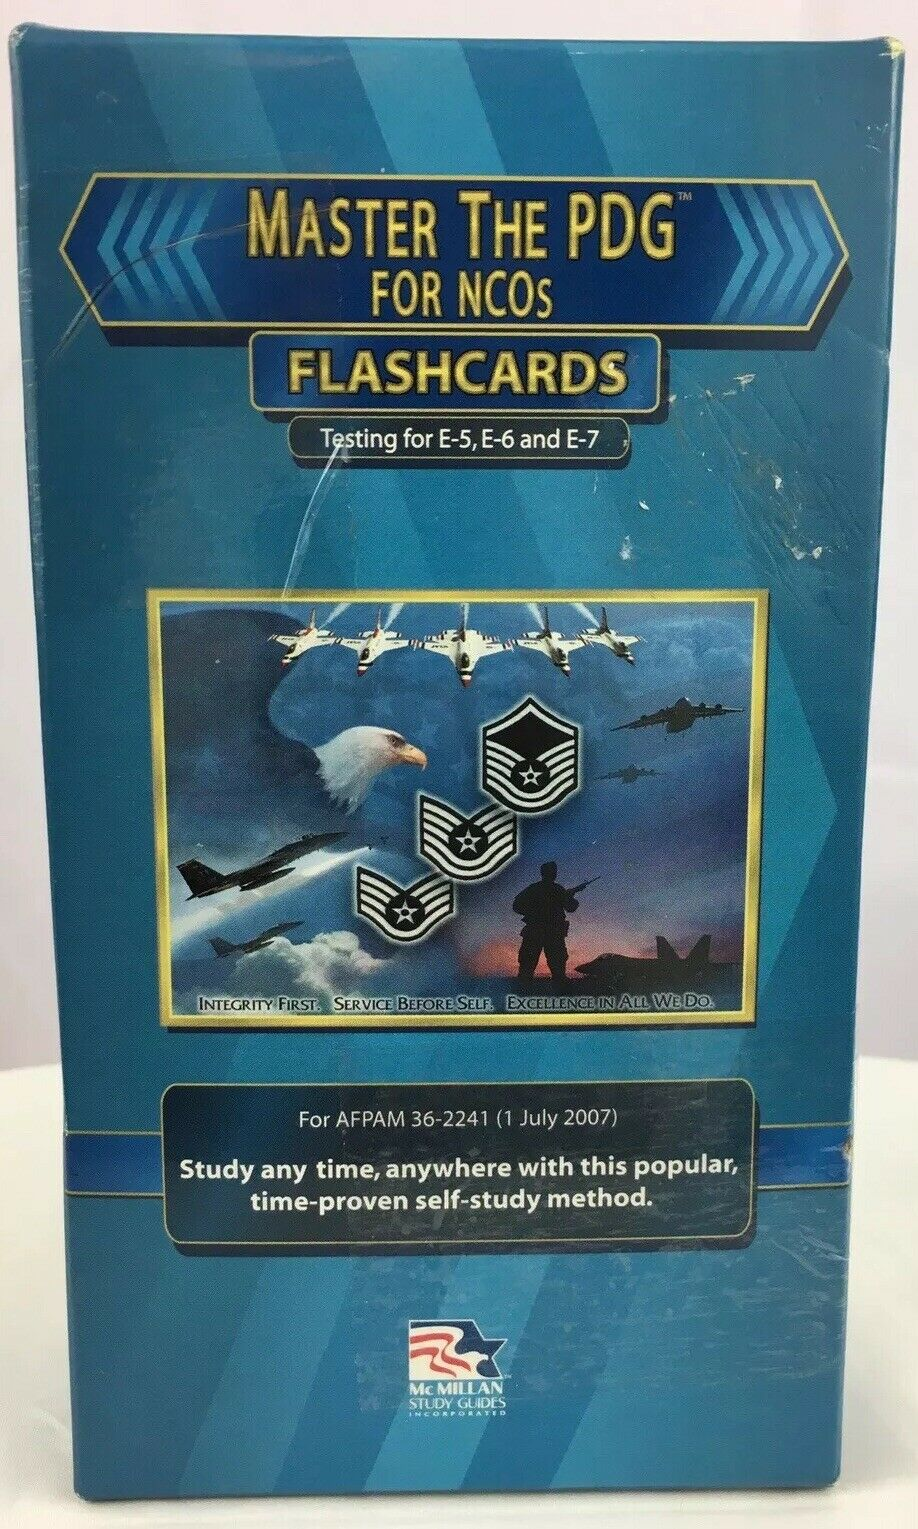 US Air Force Master The PDG Testing for NCO E 5 E 6 Flashcards 2015 Study